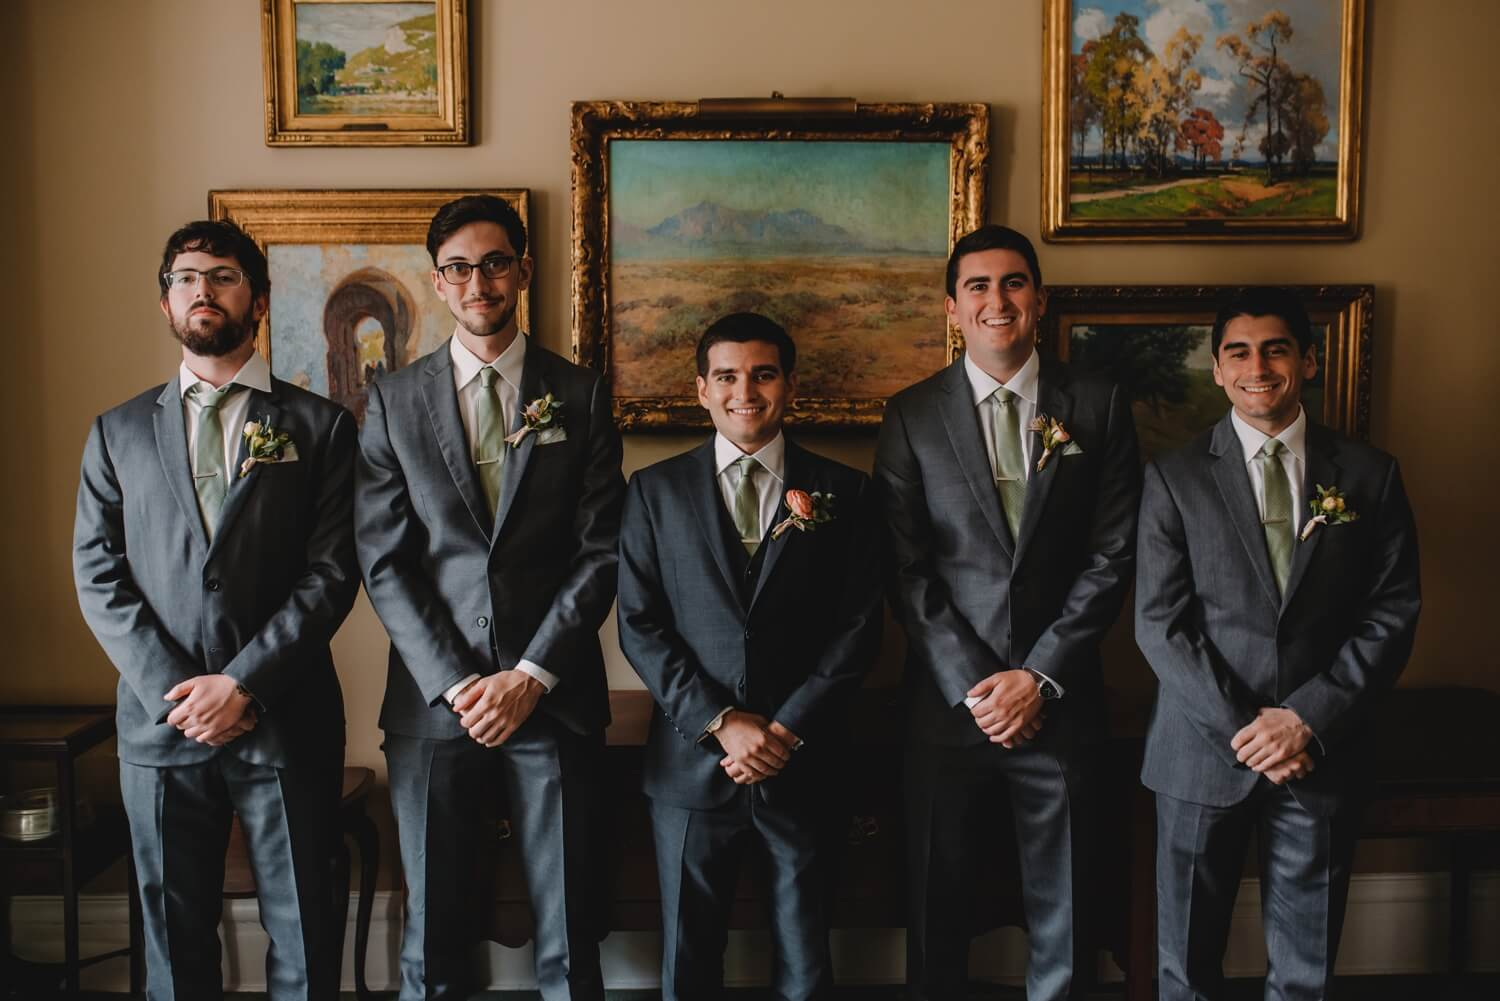 Groomsman photo, The Women's Club of Evanston Wedding Photographer - The Adamkovi, Chicago wedding Photographer